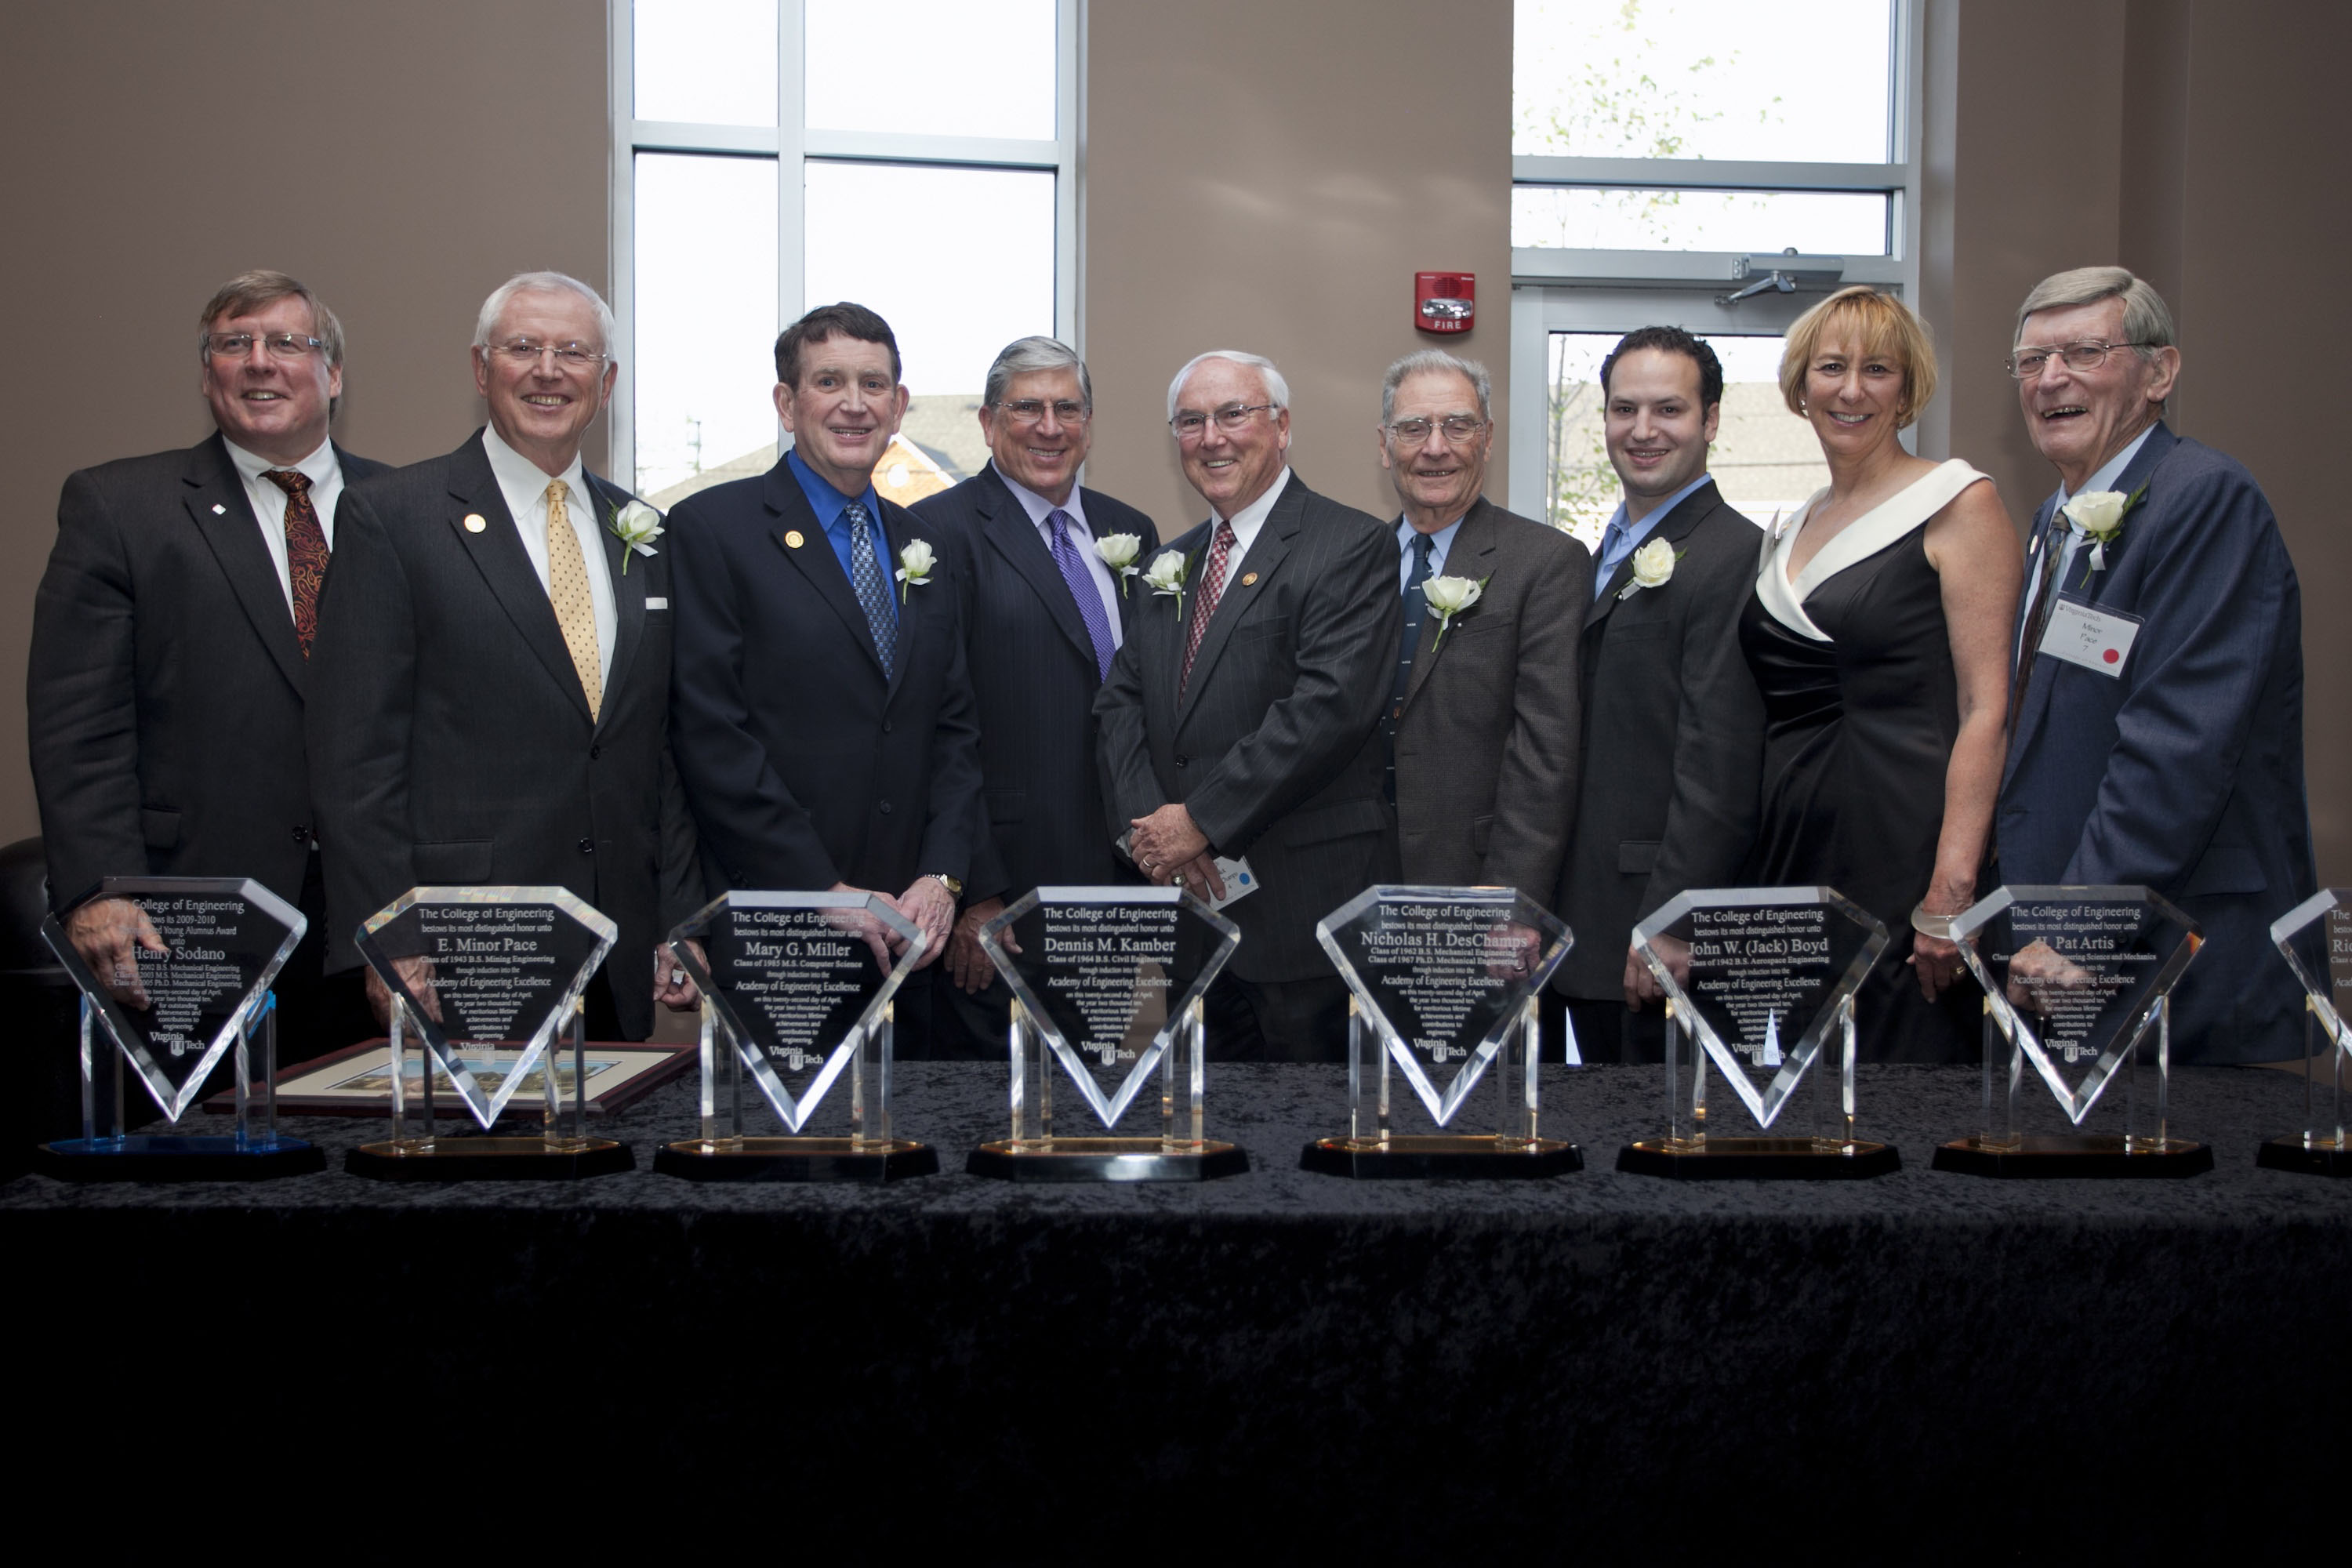 Pictured are the new members of the Academy of Engineering Excellence at Virginia Tech. From left to right, are:  Richard Benson, dean of Virginia Tech's College of Engineering, who presented the awards; Richard Arnold of Blacksburg, Va.; H. Pat Artis of Pogosa Springs, Colo.; Dennis M. Kamber of Poolesville, Md.; Nicholas DesChamps of Fincastle, Va., and Las Vegas, Nev.; John W. Boyd of Saratoga, Cal.; Henry Sodano (named the 2010 Outstanding Young Alumnus at the same event and not a member of the